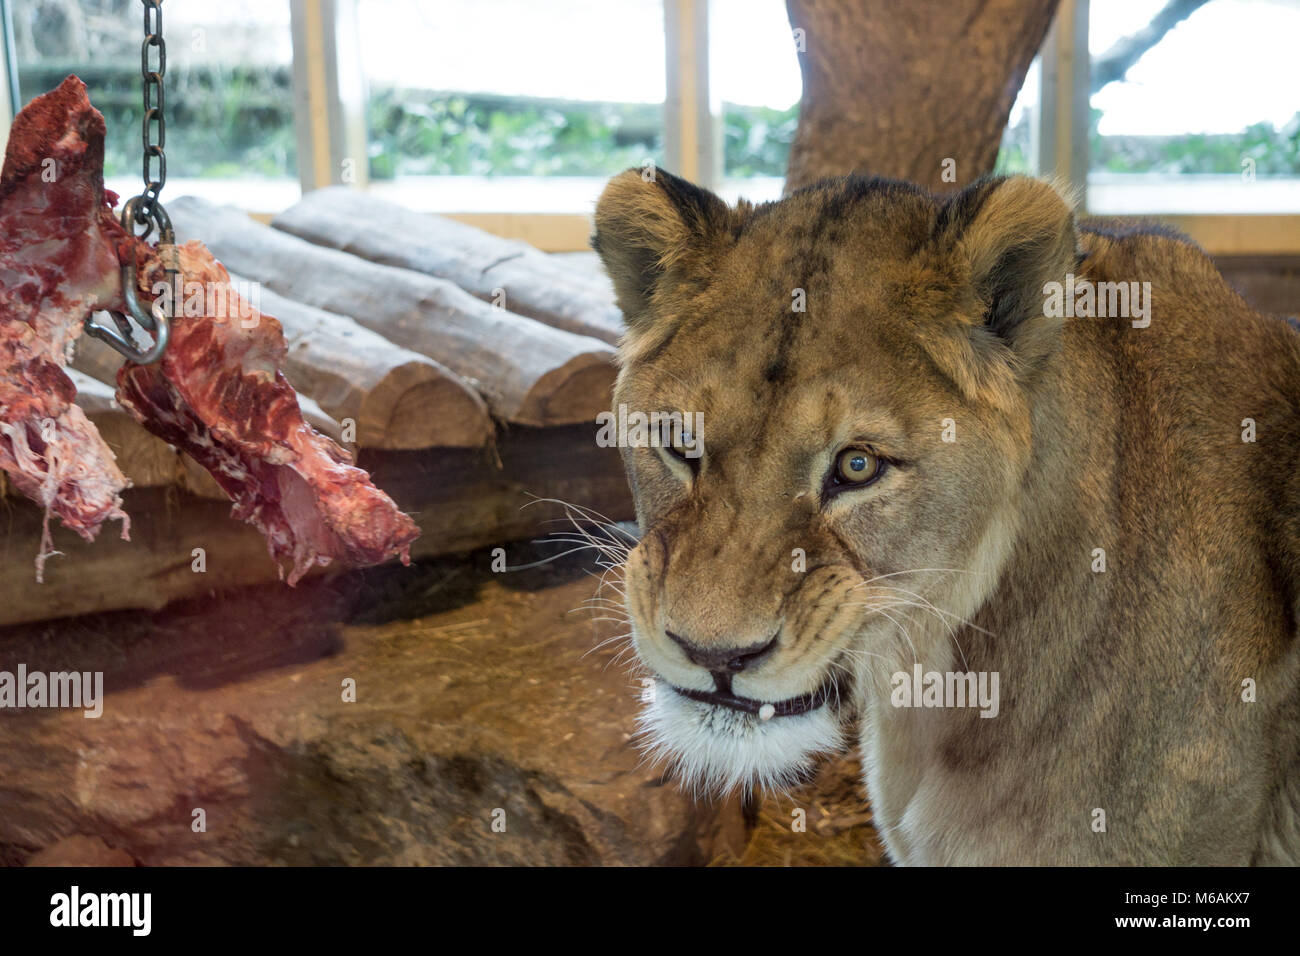 Lioness growls at onlookers gathered to watch her feed at the zoo - Stock Image